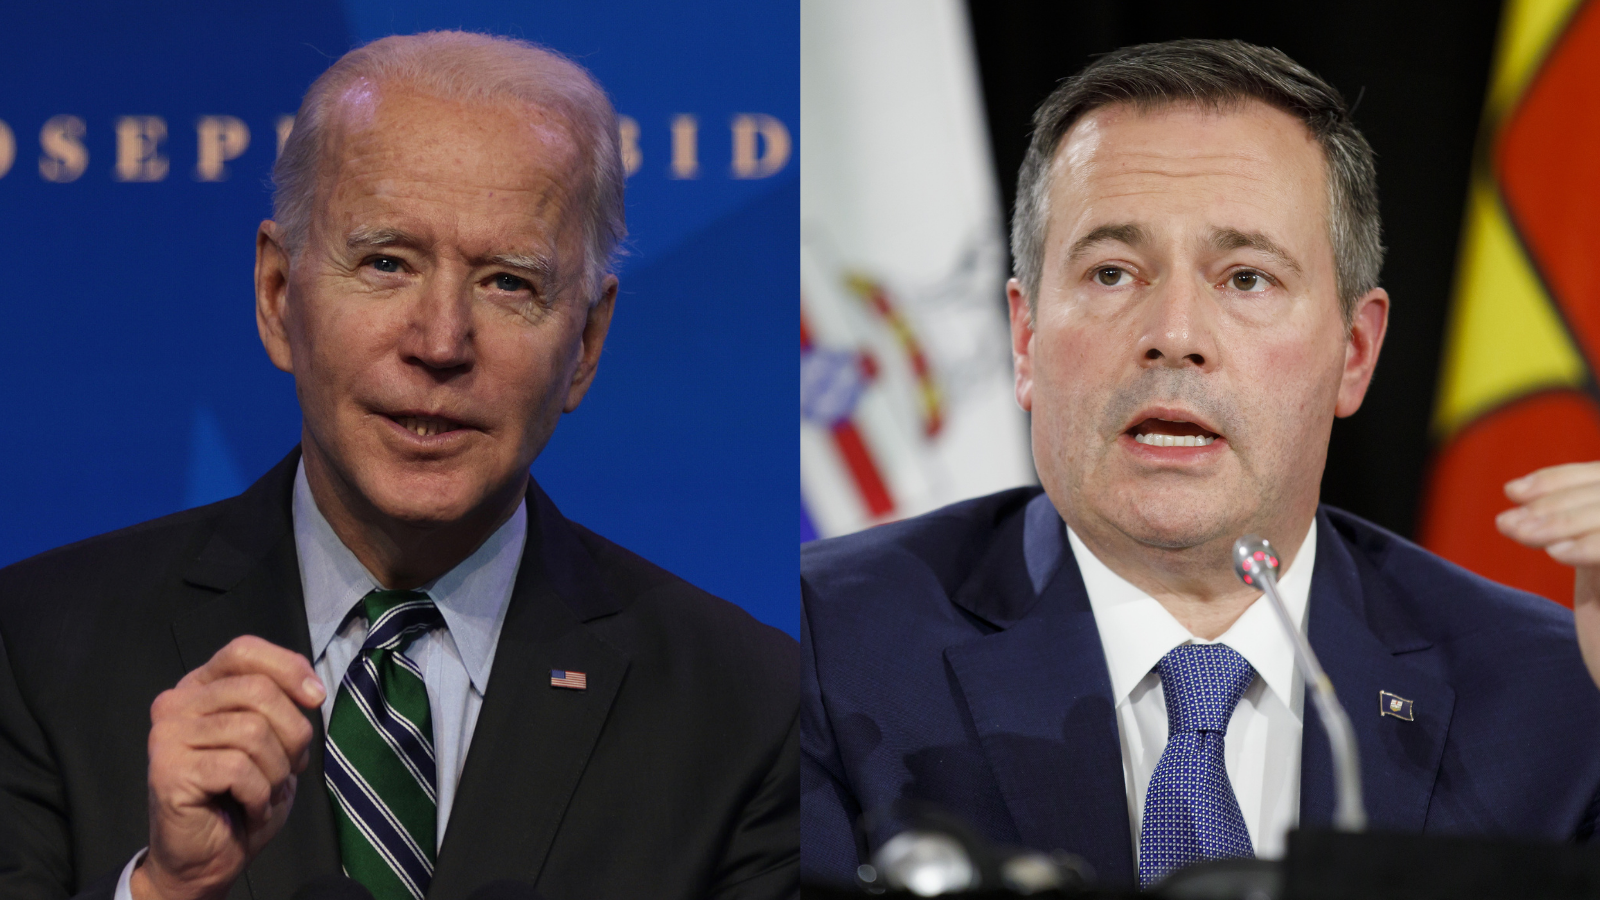 vice.com - Joe Biden to Cancel Keystone Pipeline, Another Blow to Canadian Oil Industry - VICE